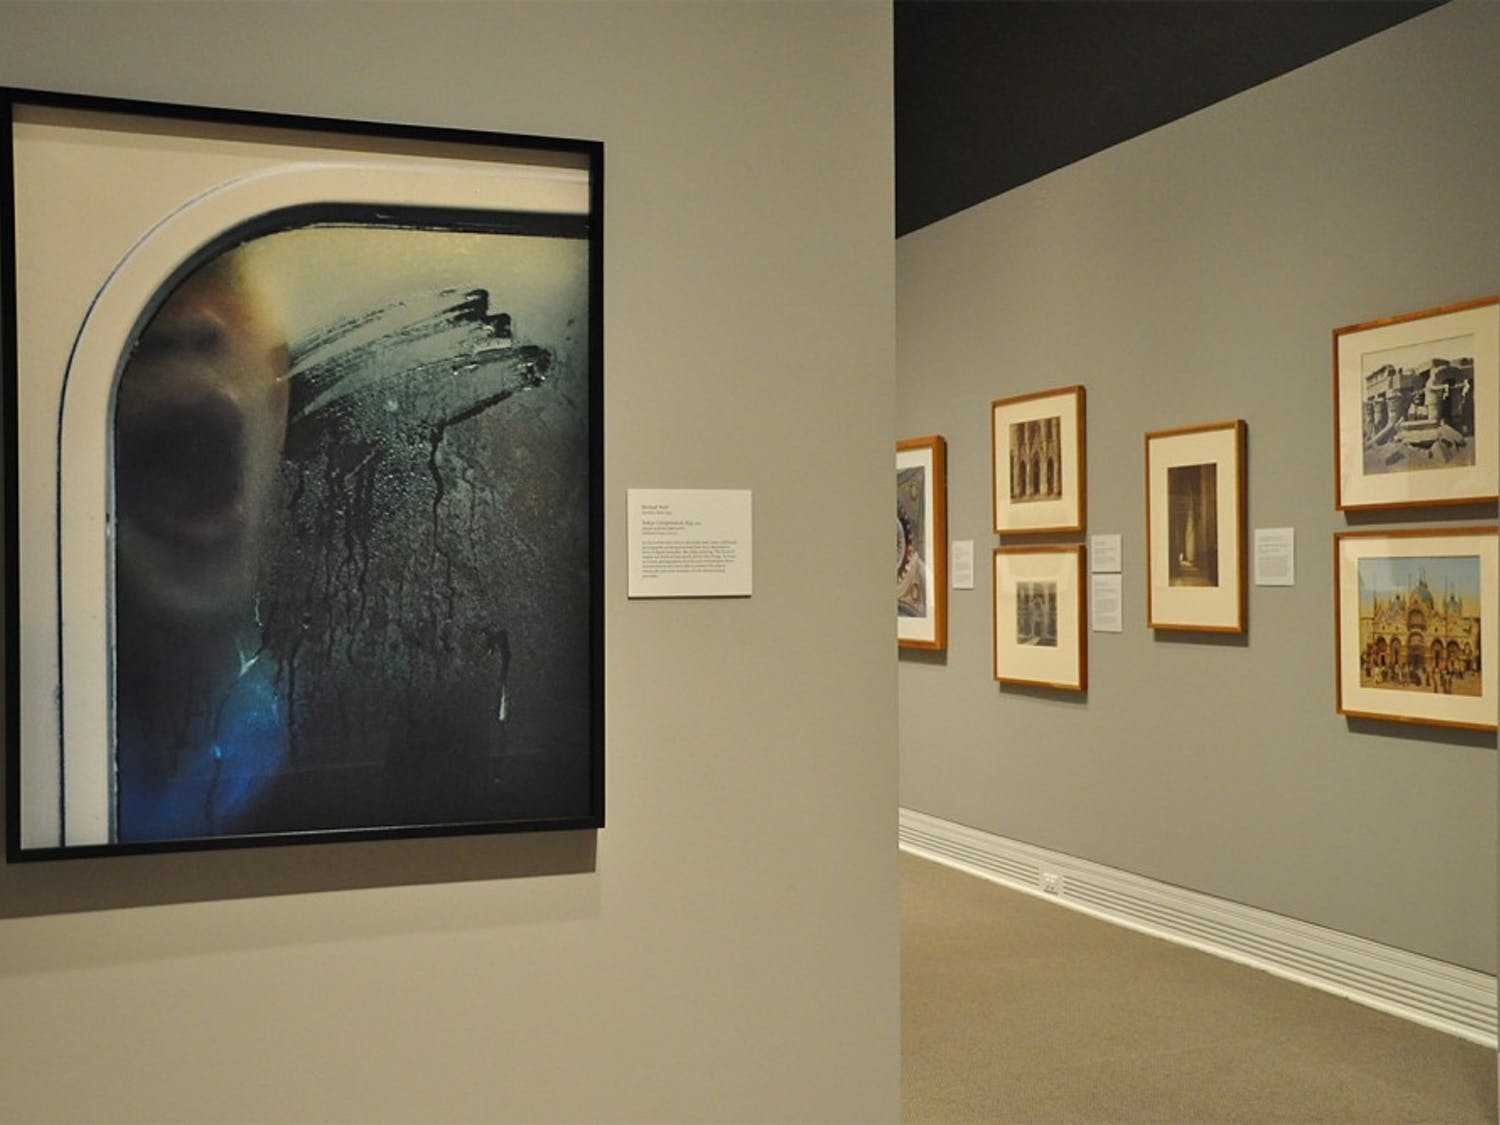 """Ackland Art Museum, located on Franklin Street, opened its new exhibit """"PhotoVision"""" on Thursday evening. The exhibit features around 150 photographs tracing the history of photography from the nineteenth century to the twenty-first century. The photographs were arranged in areas including """"Photography and Multiplicity"""", """"Sacred Spaces"""", """"Process and Product"""", and """"Staging the Image""""."""